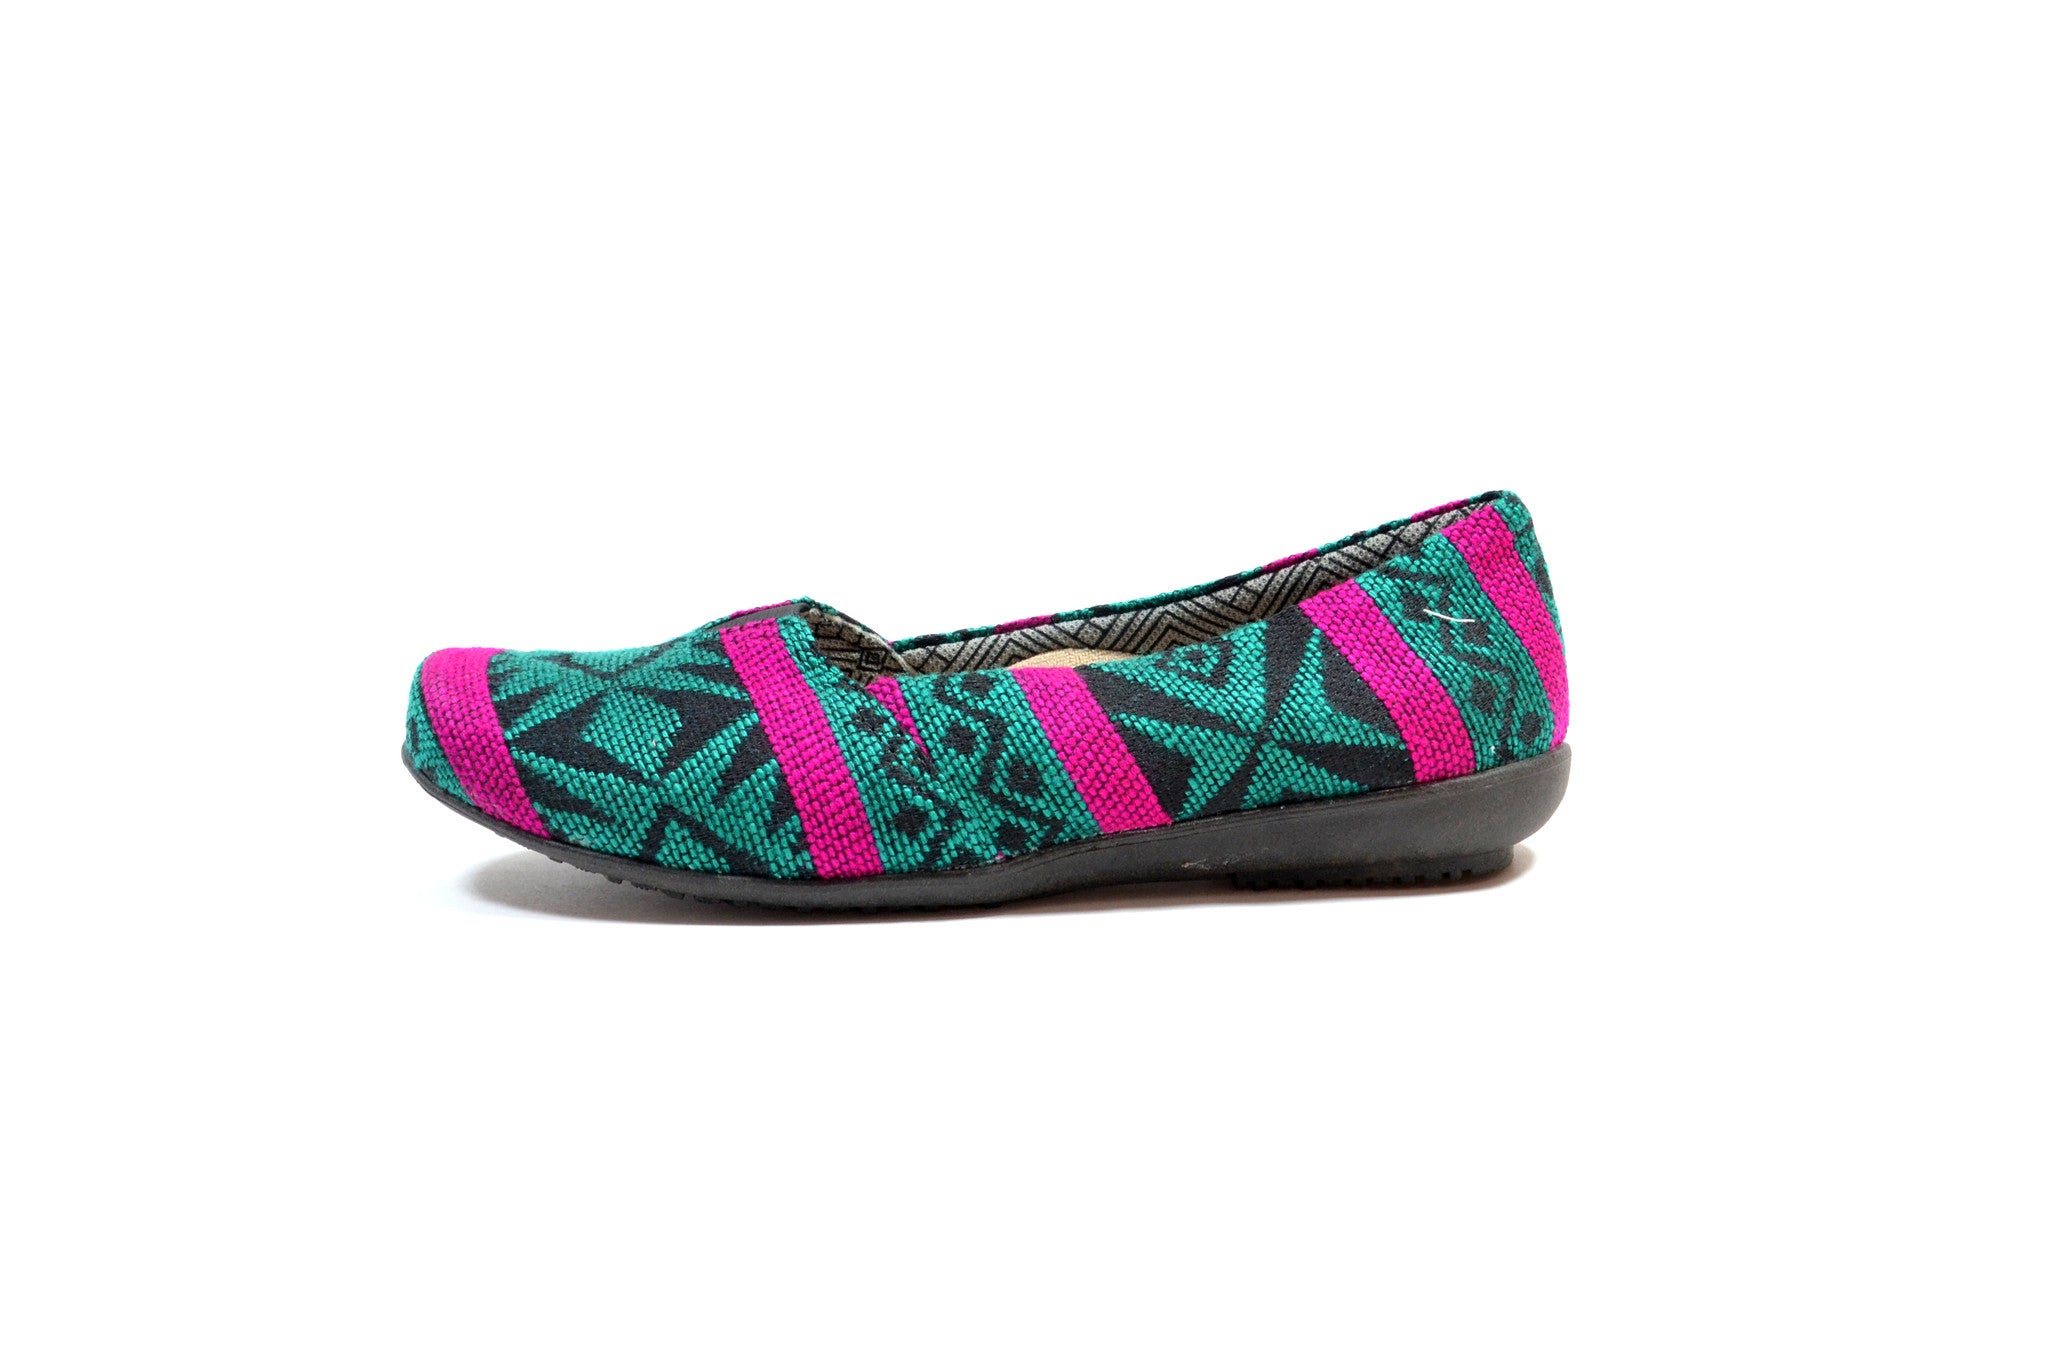 SISAY SLIP ON SHOES - FUCHSIA & GREEN